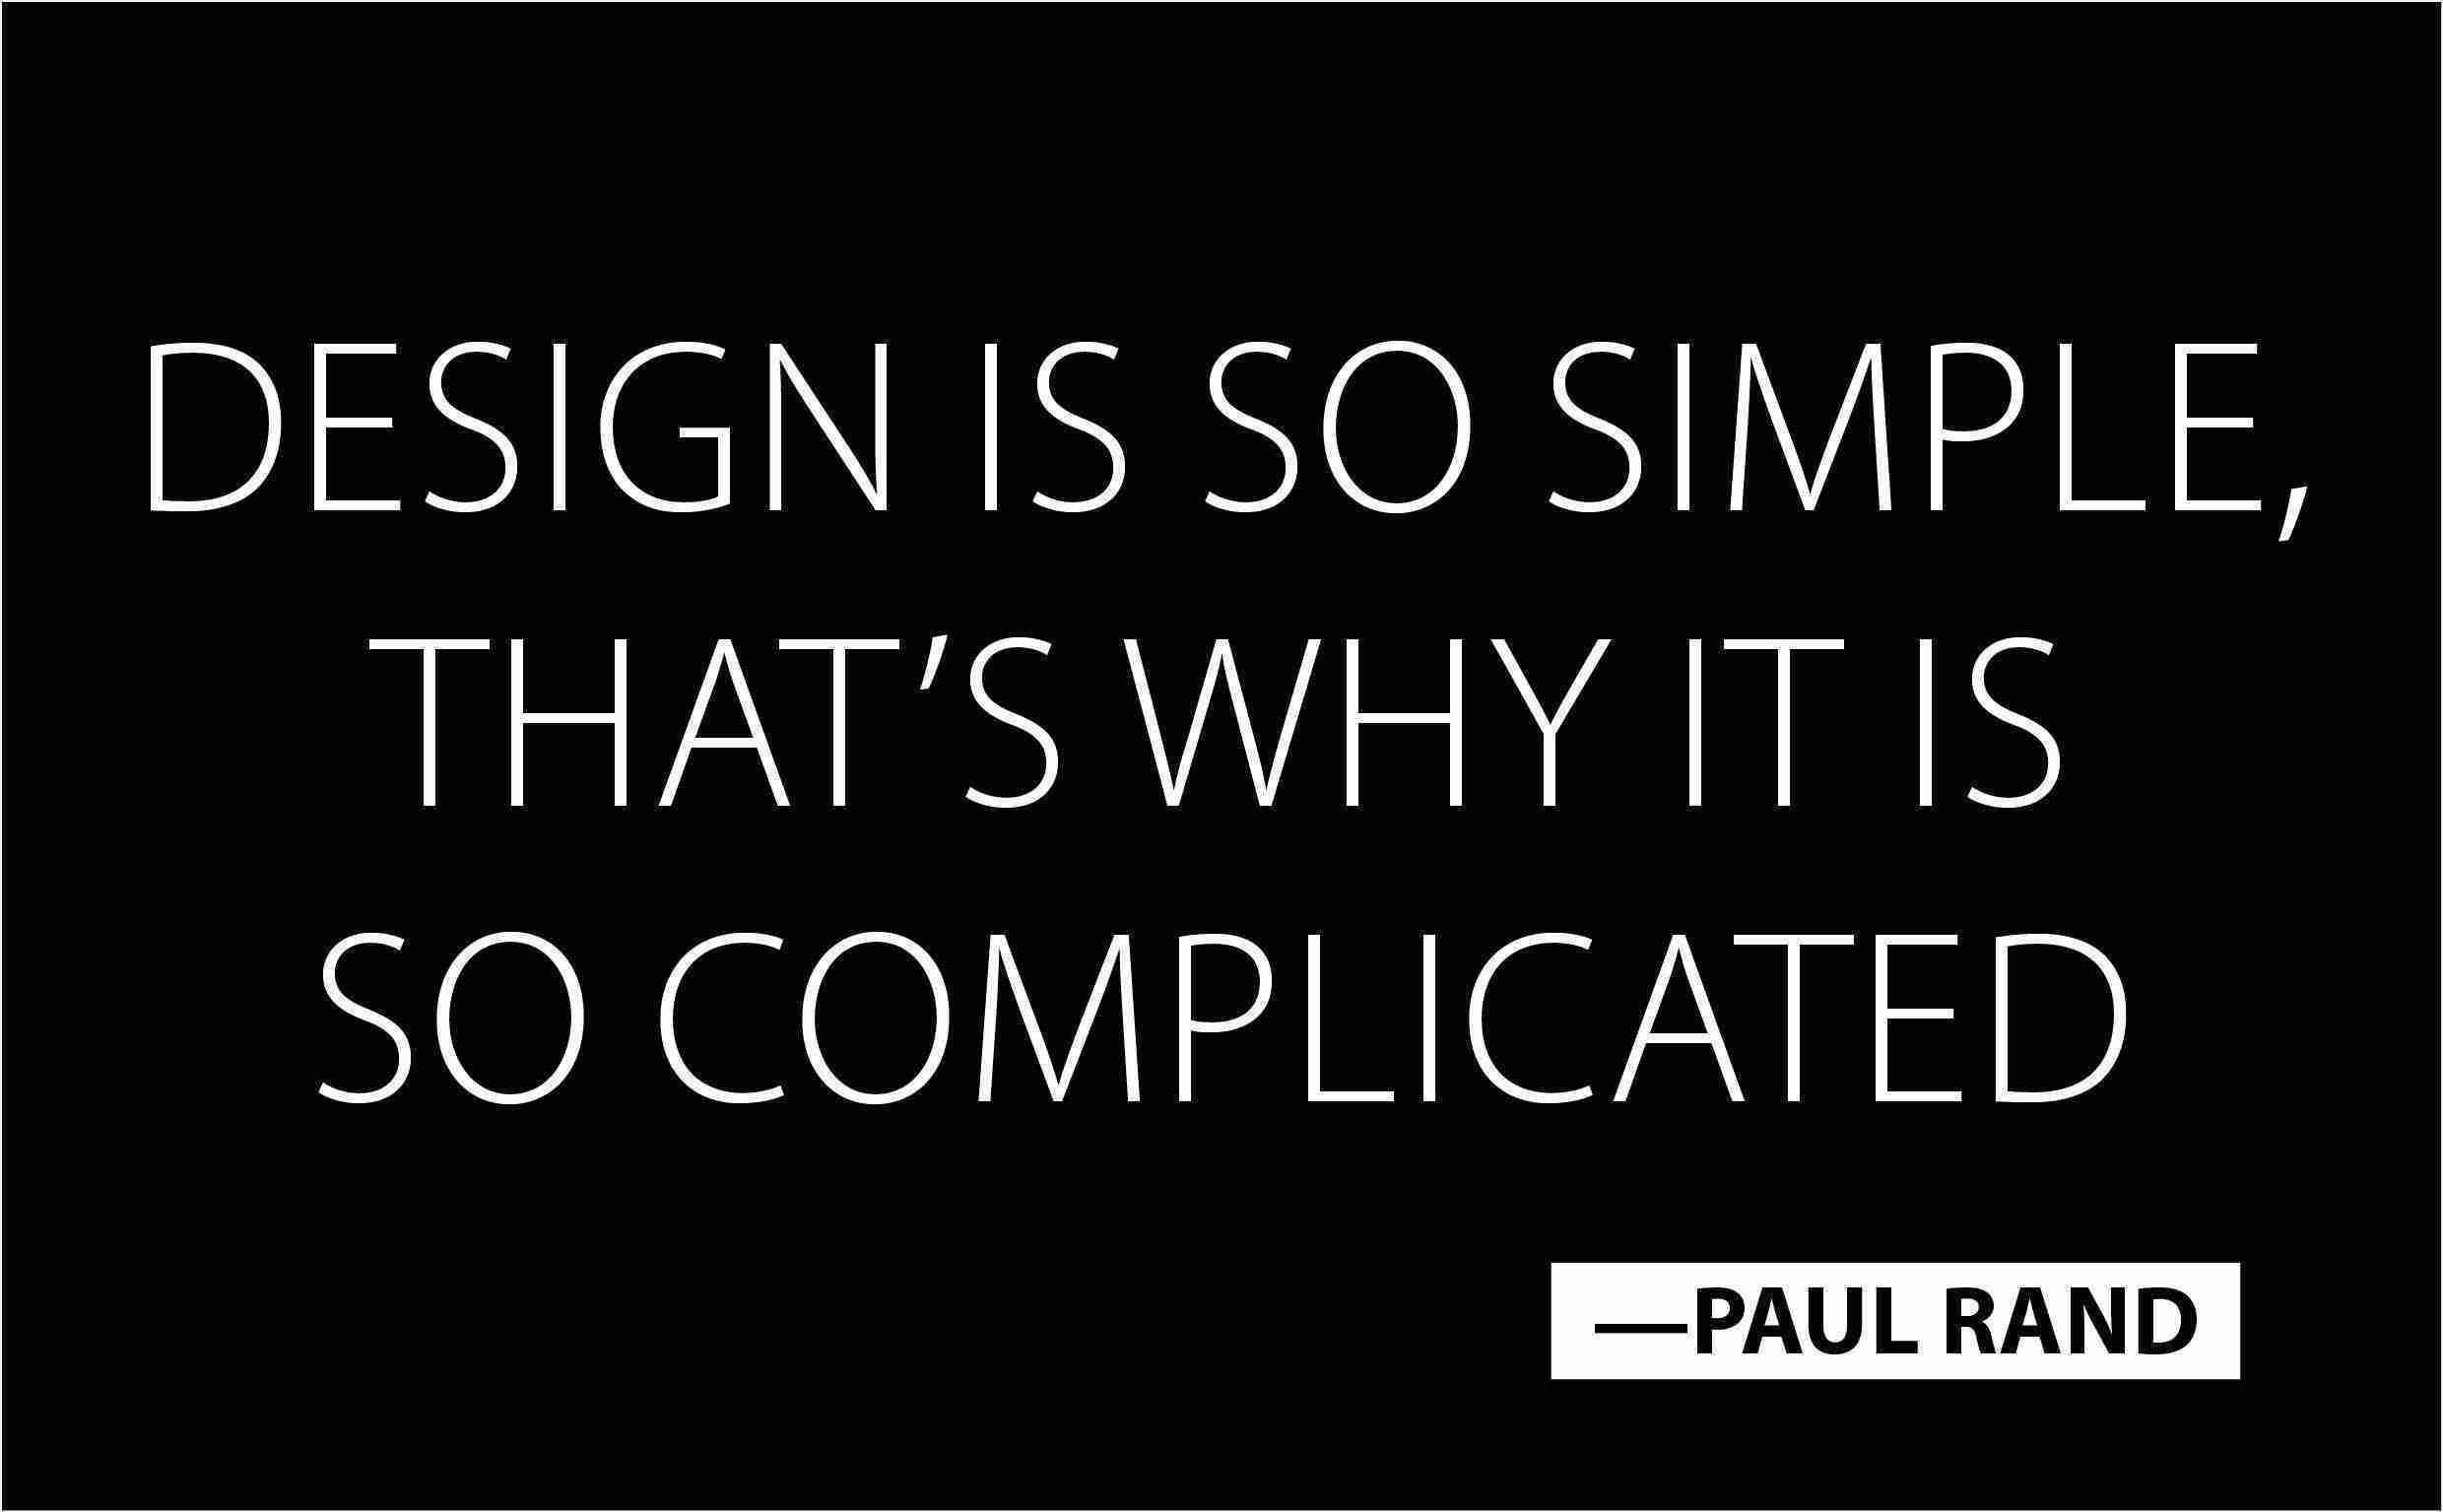 Quotes On Design -